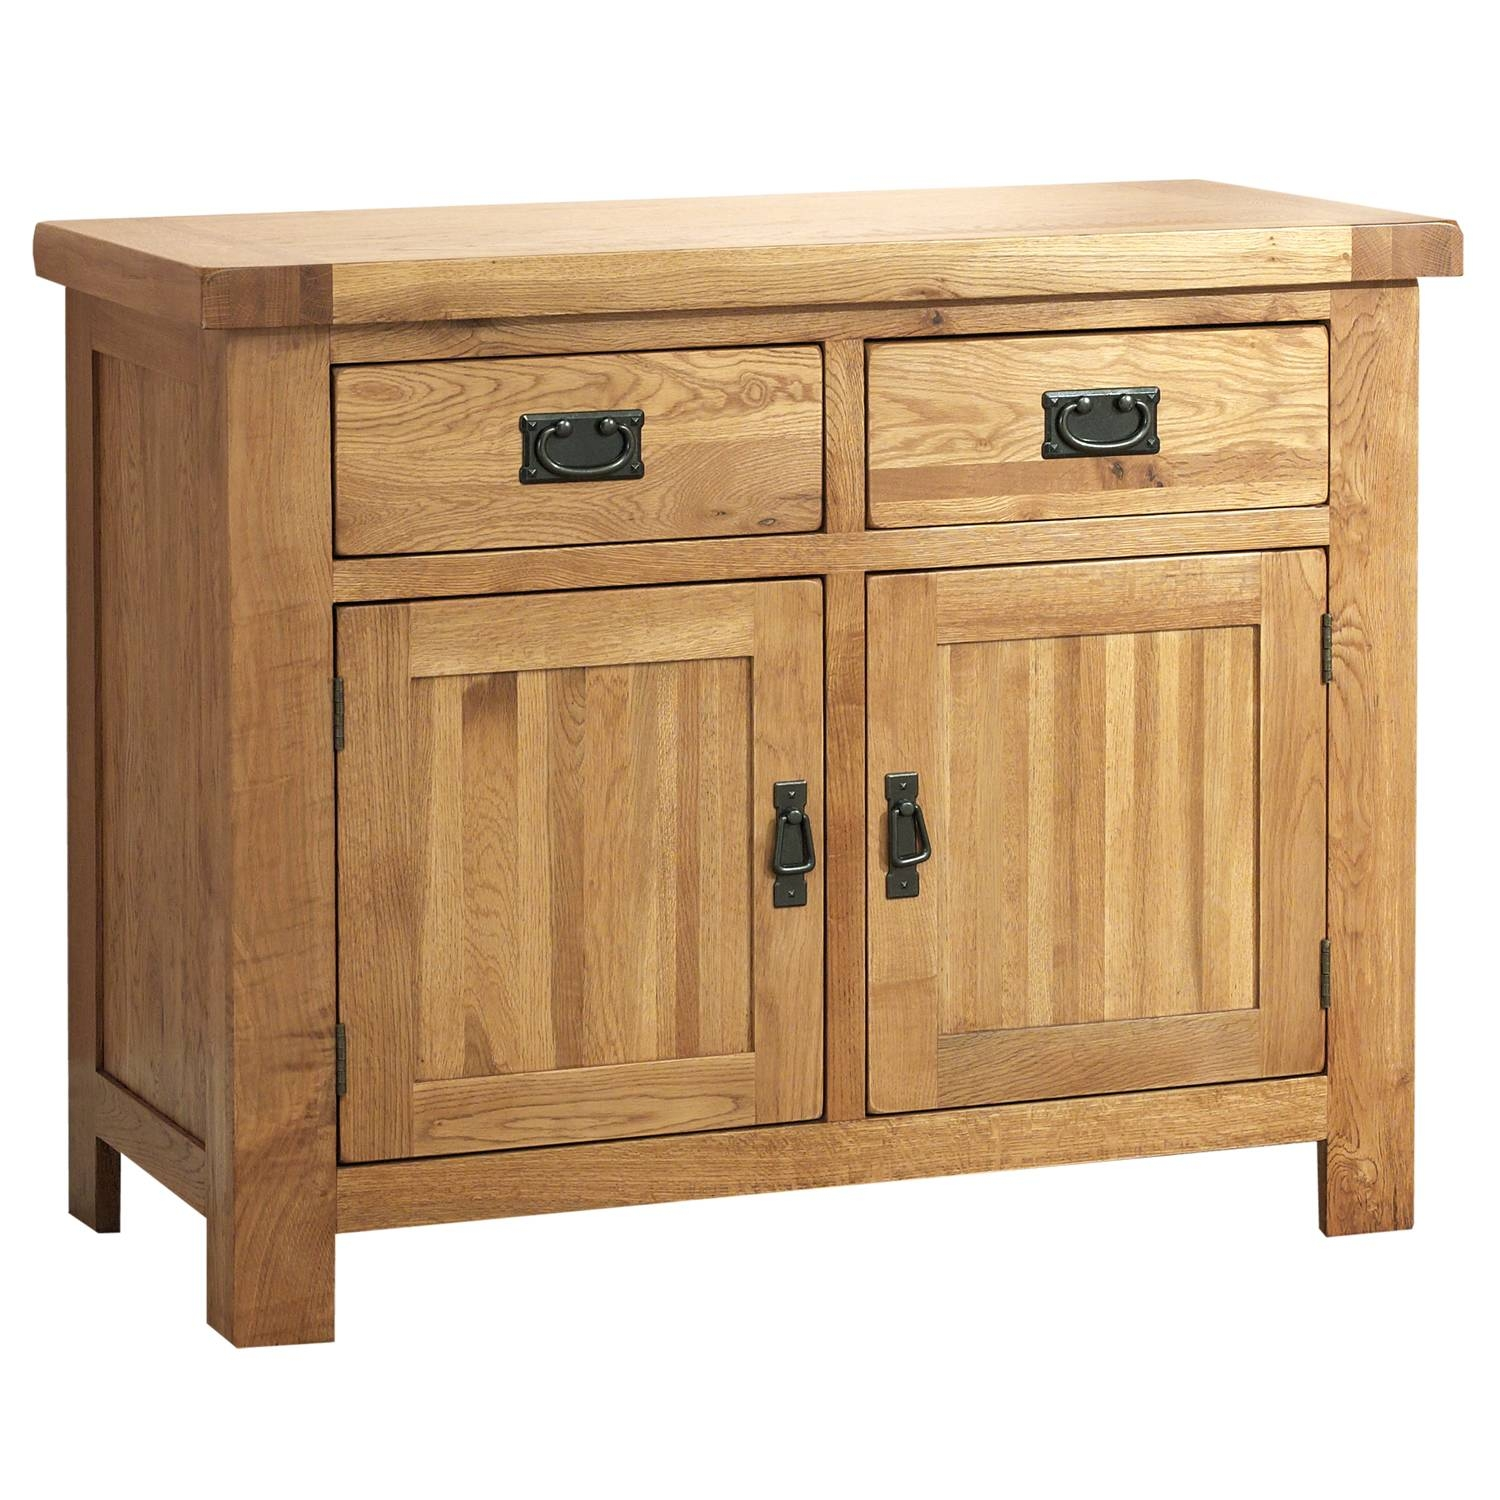 Solid Oak Sideboard Is Your First Choice Living Room Furniture - Hgnv intended for Light Oak Sideboards (Image 23 of 30)